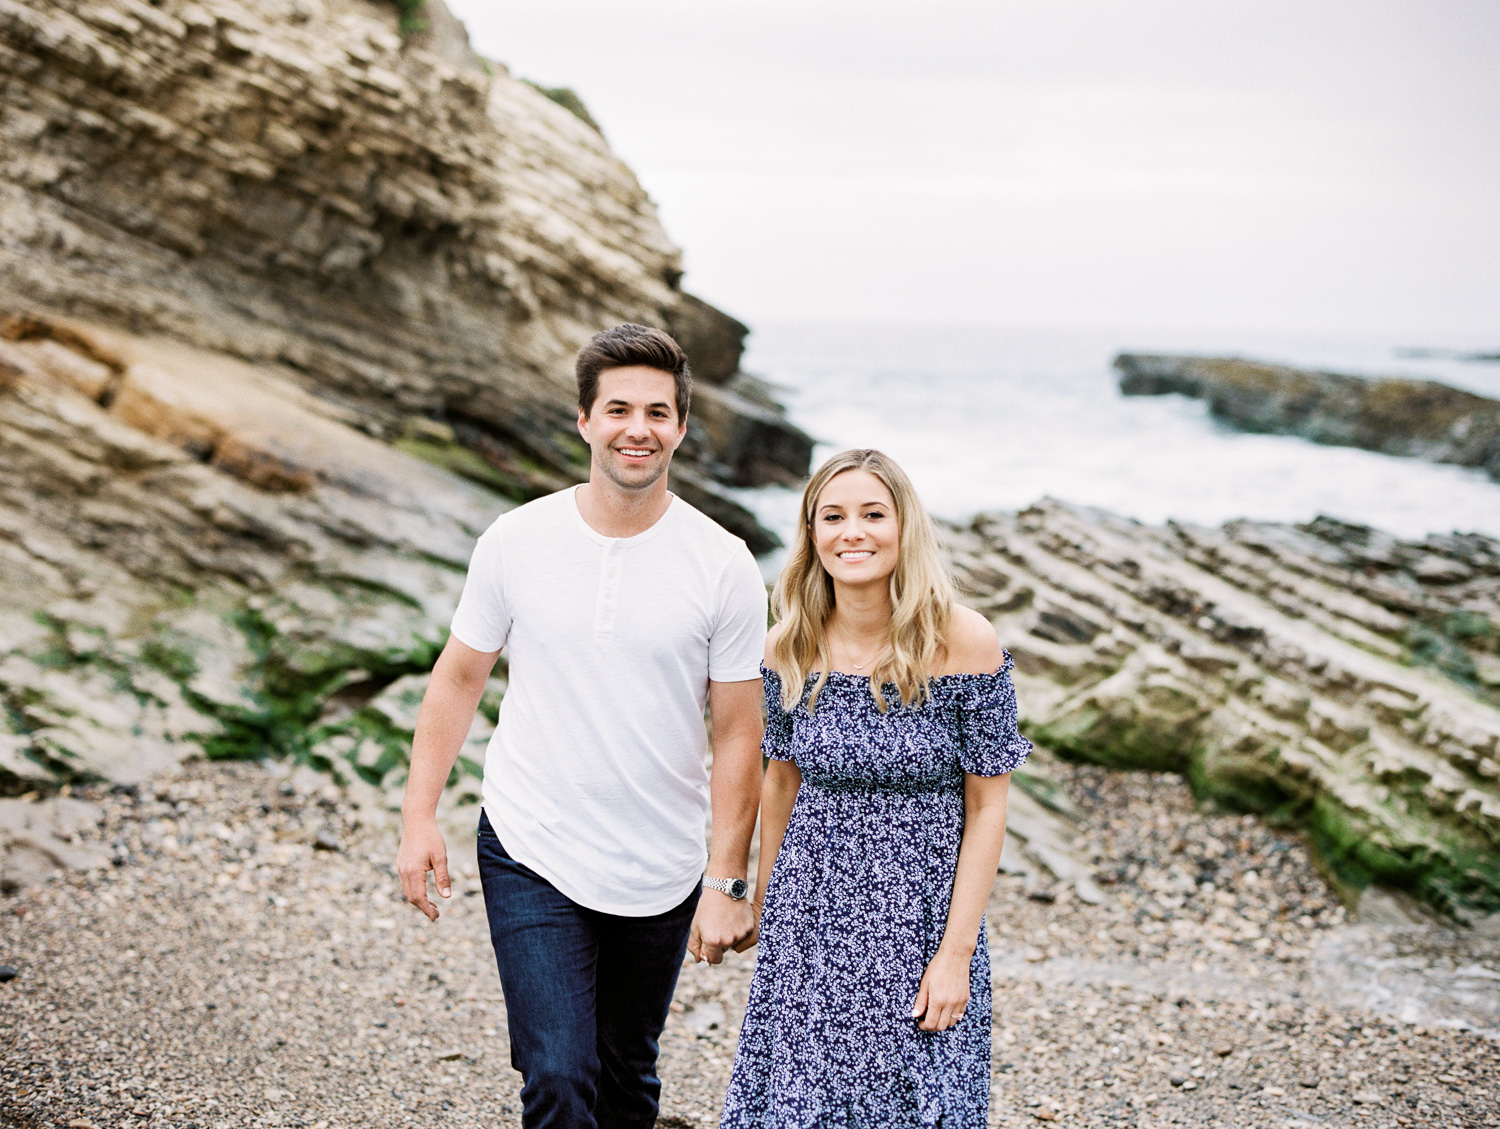 Ashley-Rae-Studio-San-Luis-Obispo-Engagement-Session-Santa-Barbara-Wedding-Photographer-163.jpg